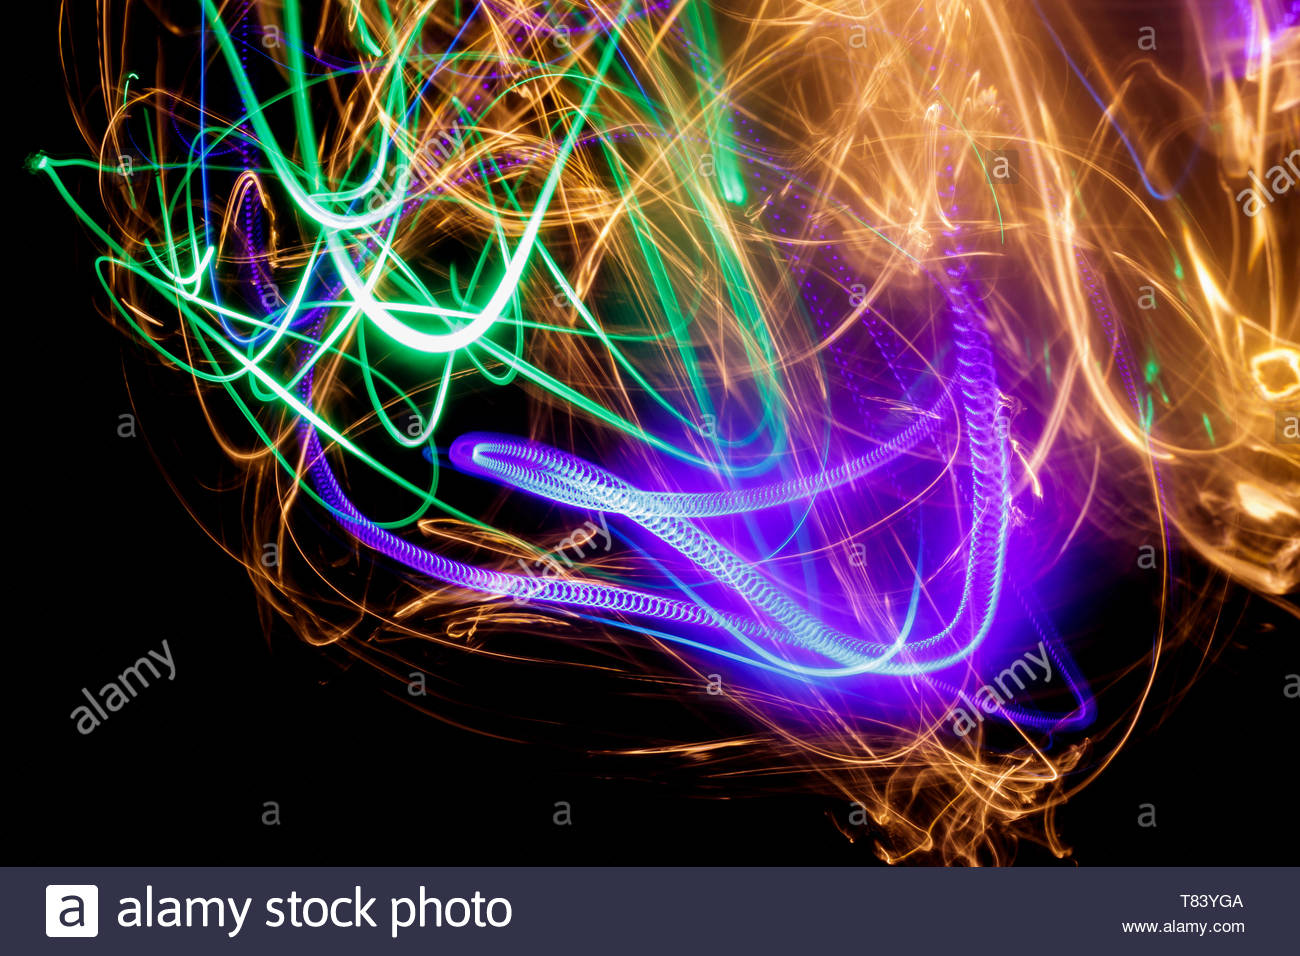 Abstract Light Effect Background - Stock Image